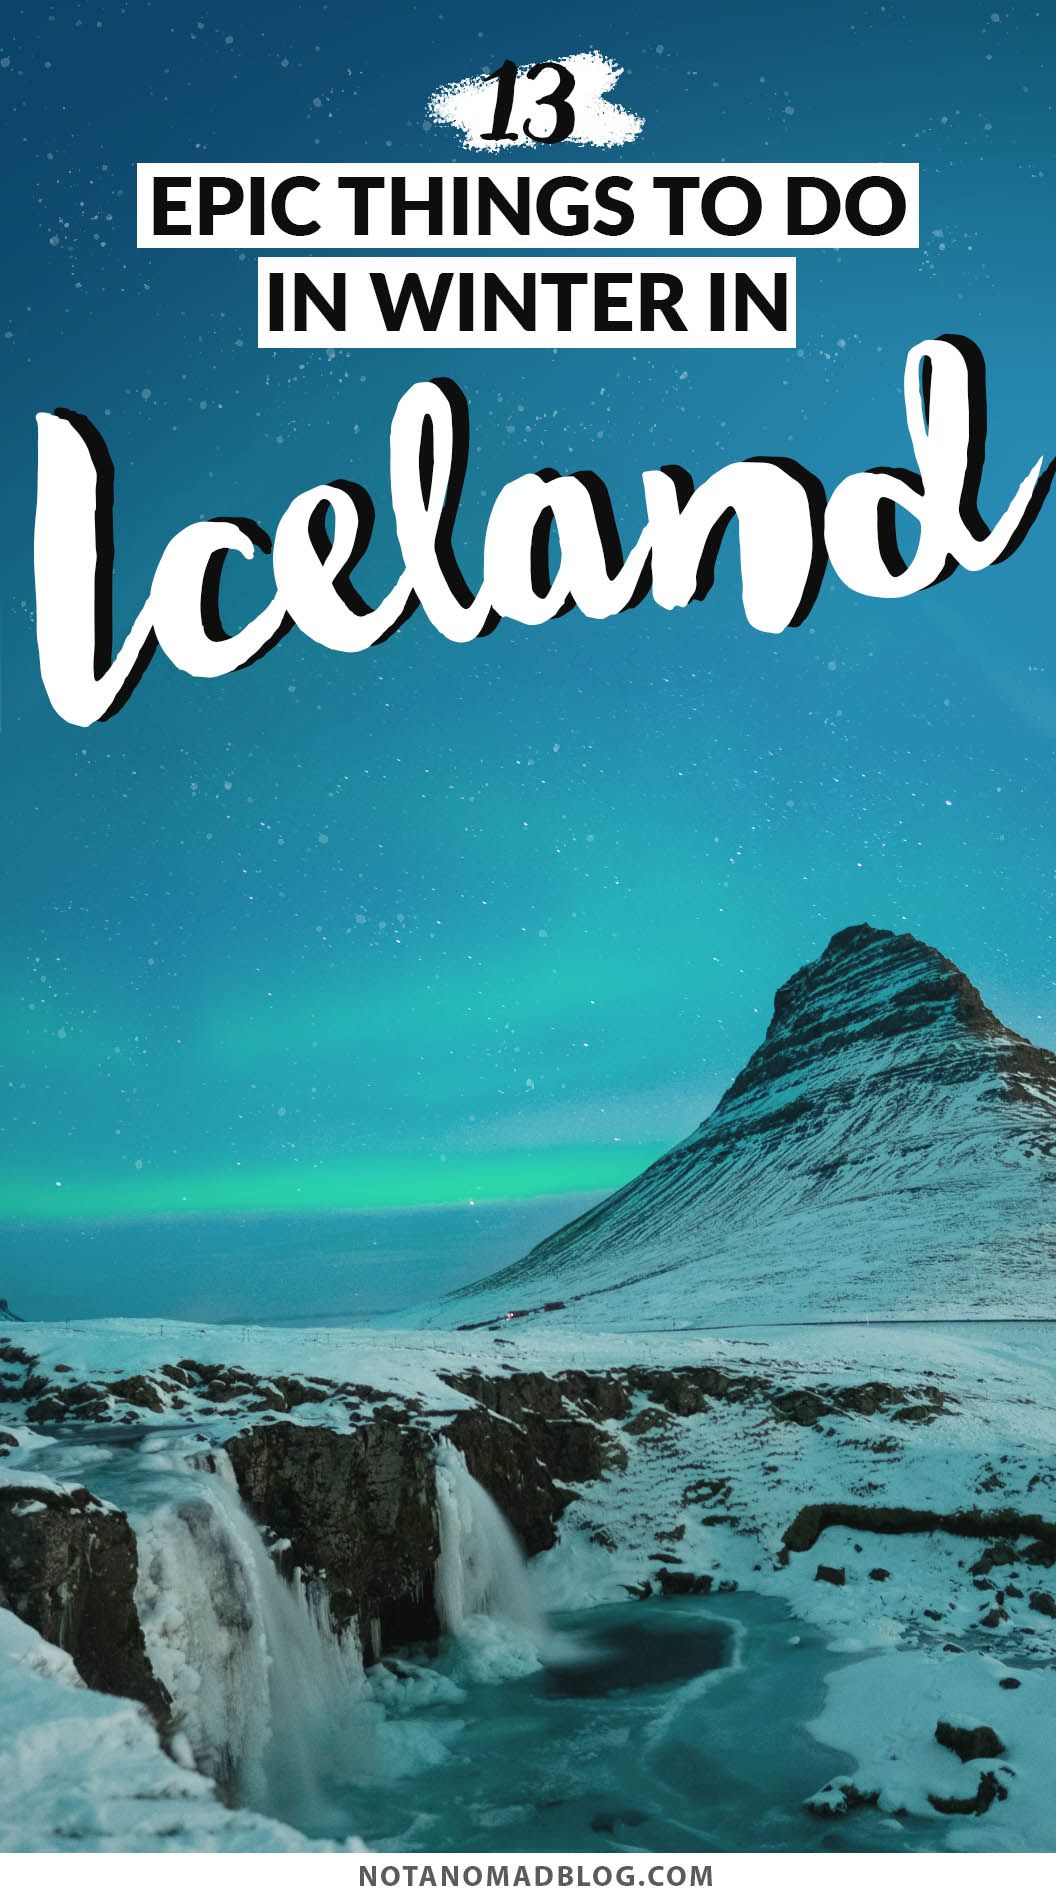 13 special things to do in Iceland in Winter | Not a Nomad Blog #thingstowear